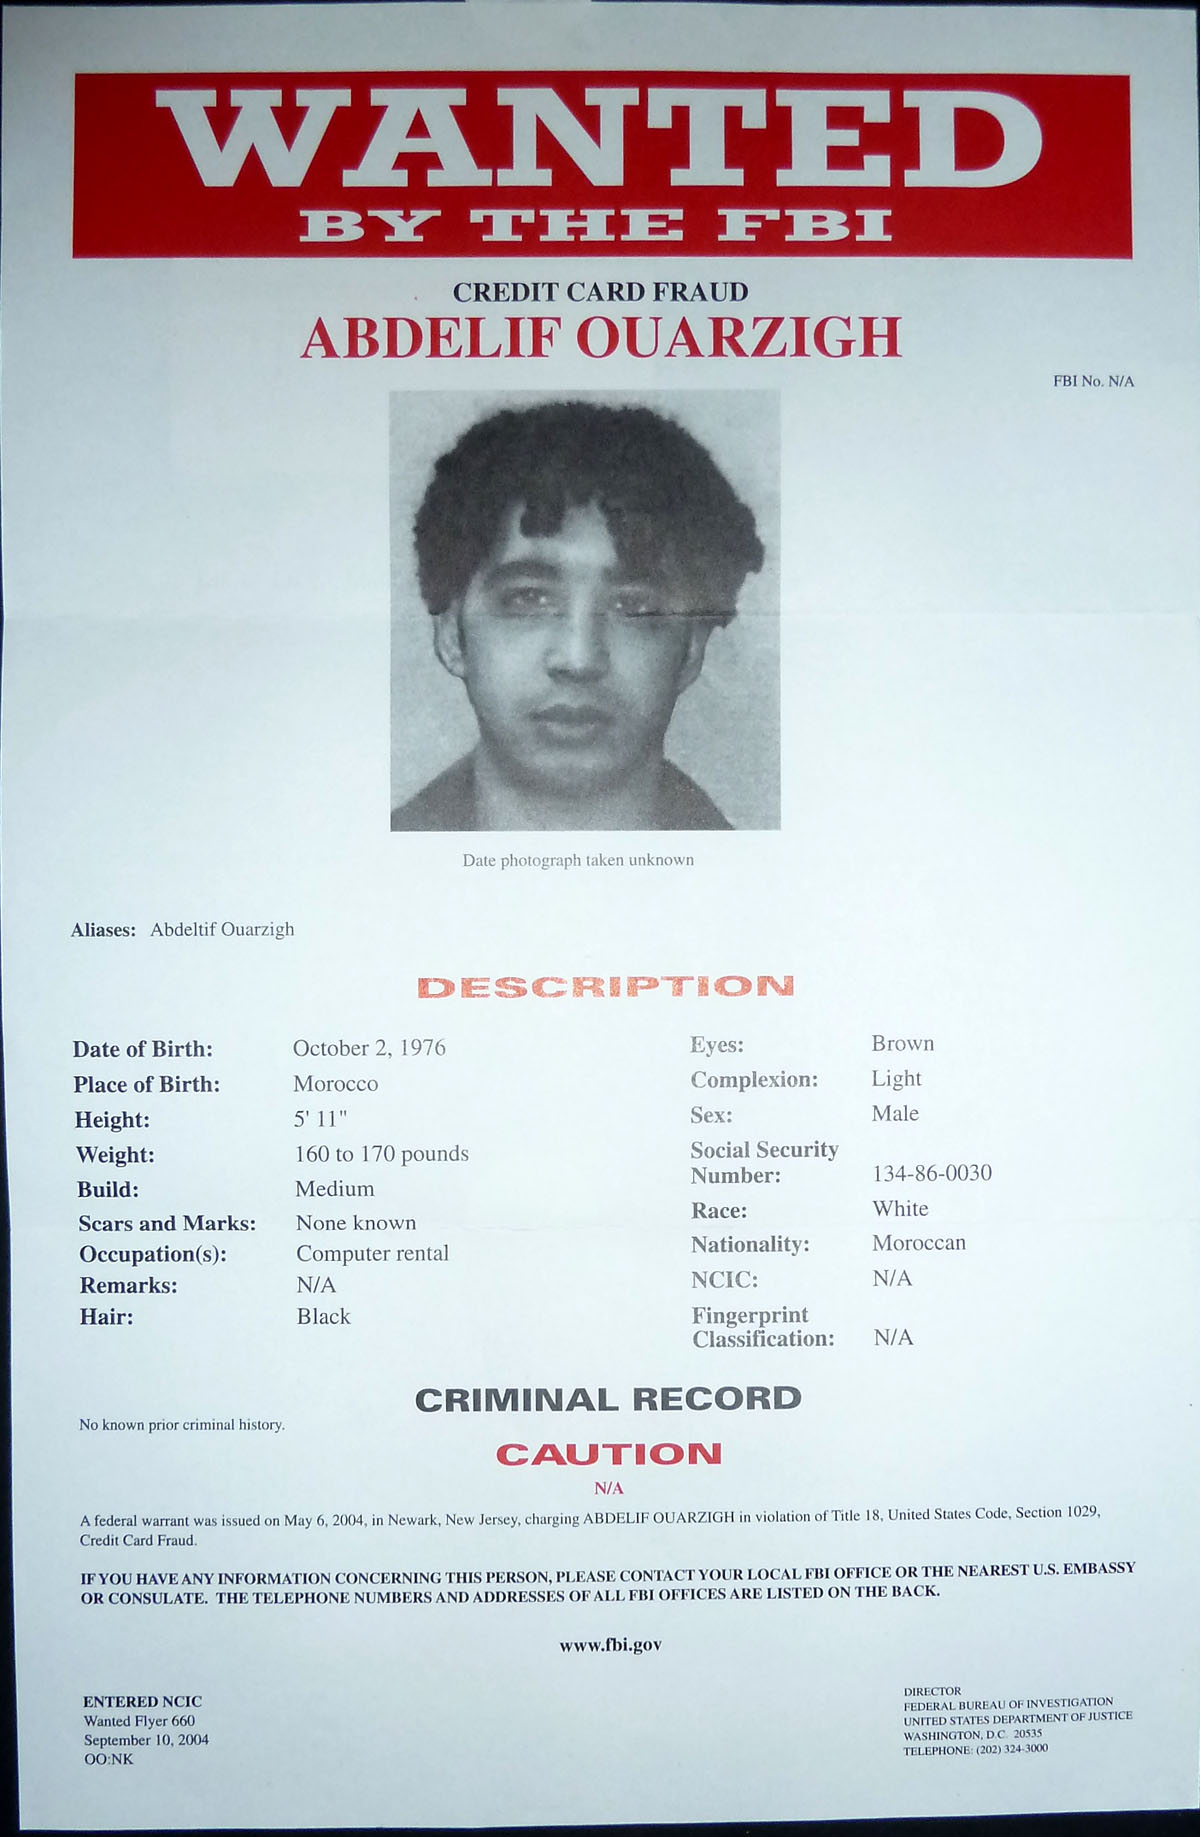 Image for FBI Wanted Poster - Abdelif Ouarzigh - Wanted for Credit Card Fraud